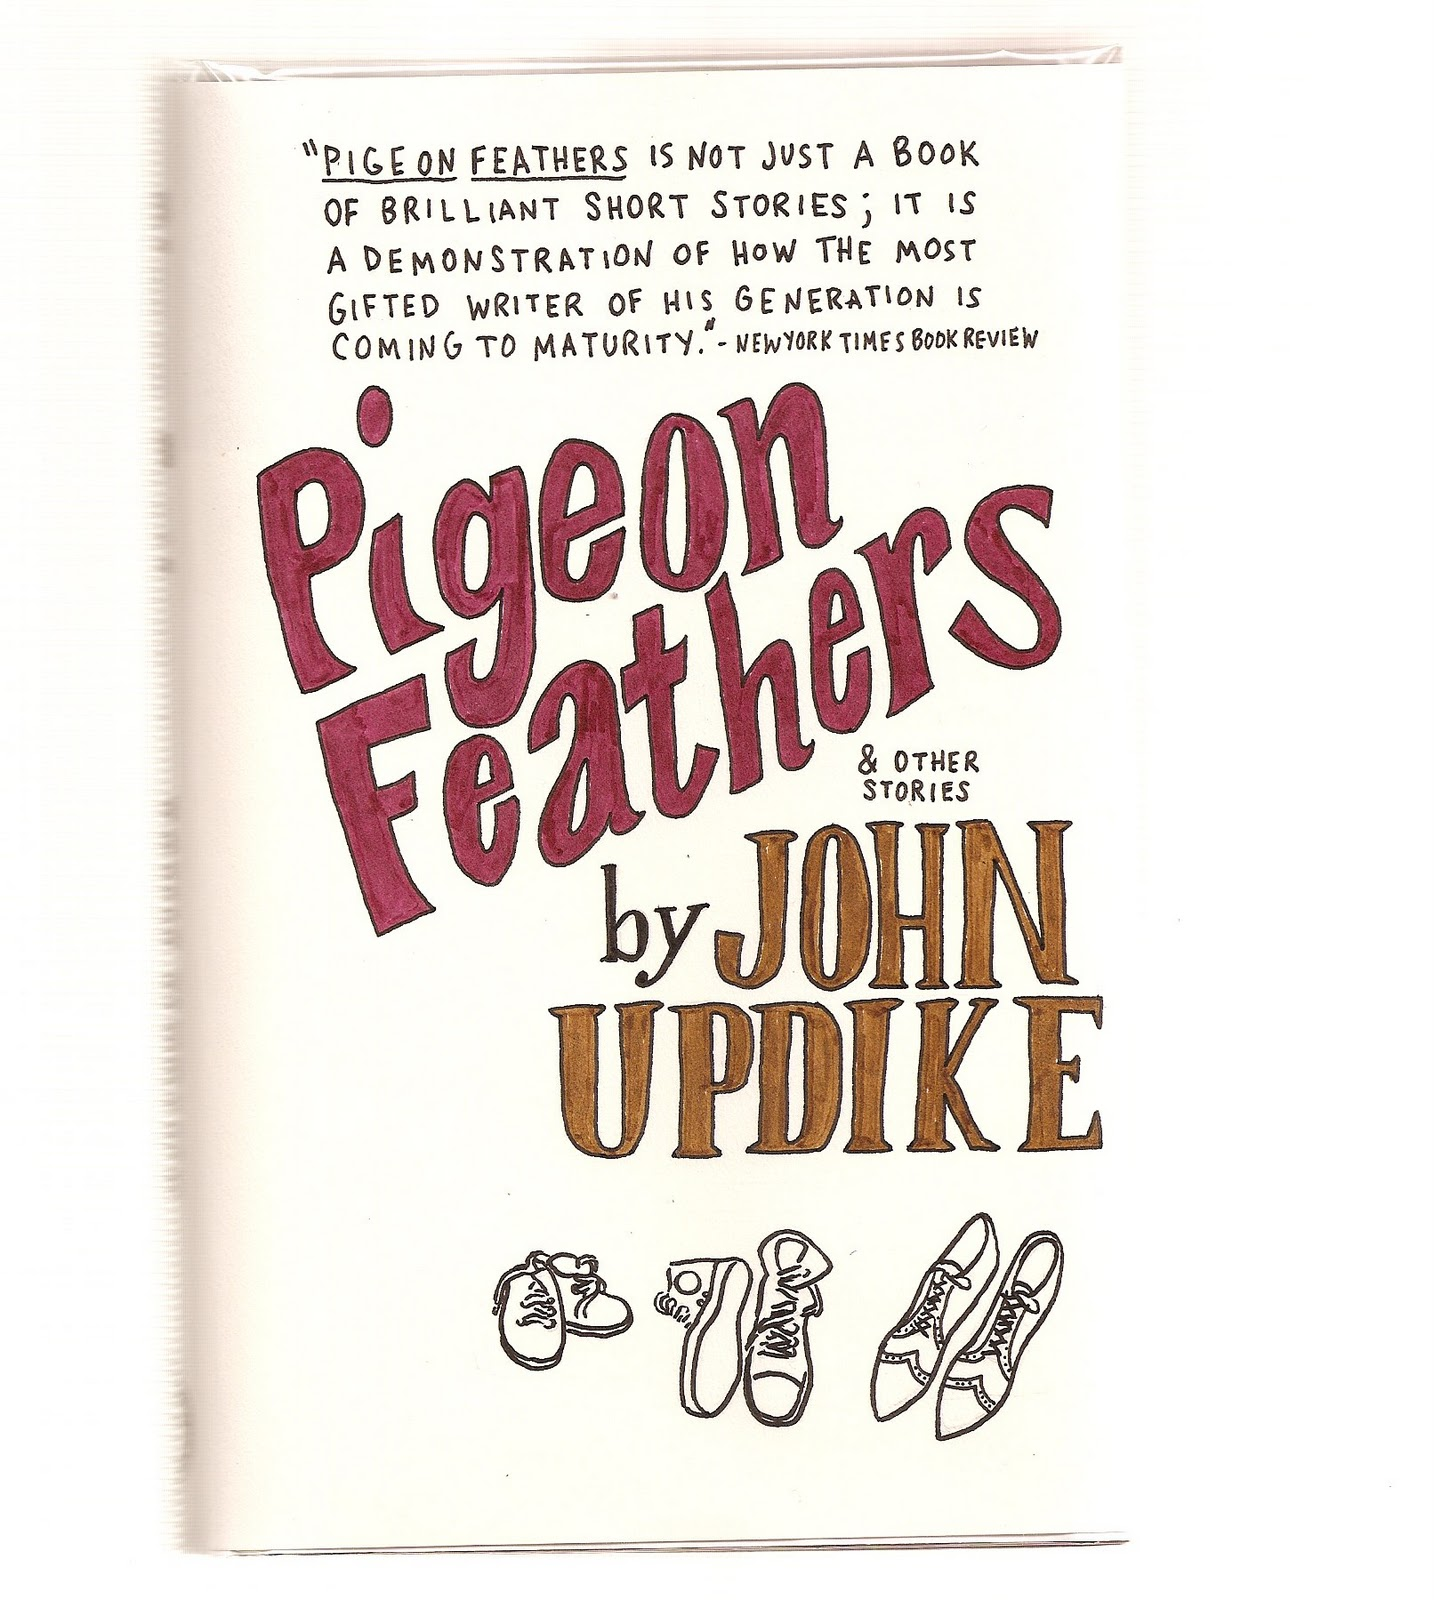 a look at pigeon feathers by john updike John updike was born in shillington,  seven are from pigeon feathers and other stories  the beauty of updike's writing in the olinger stories is often.